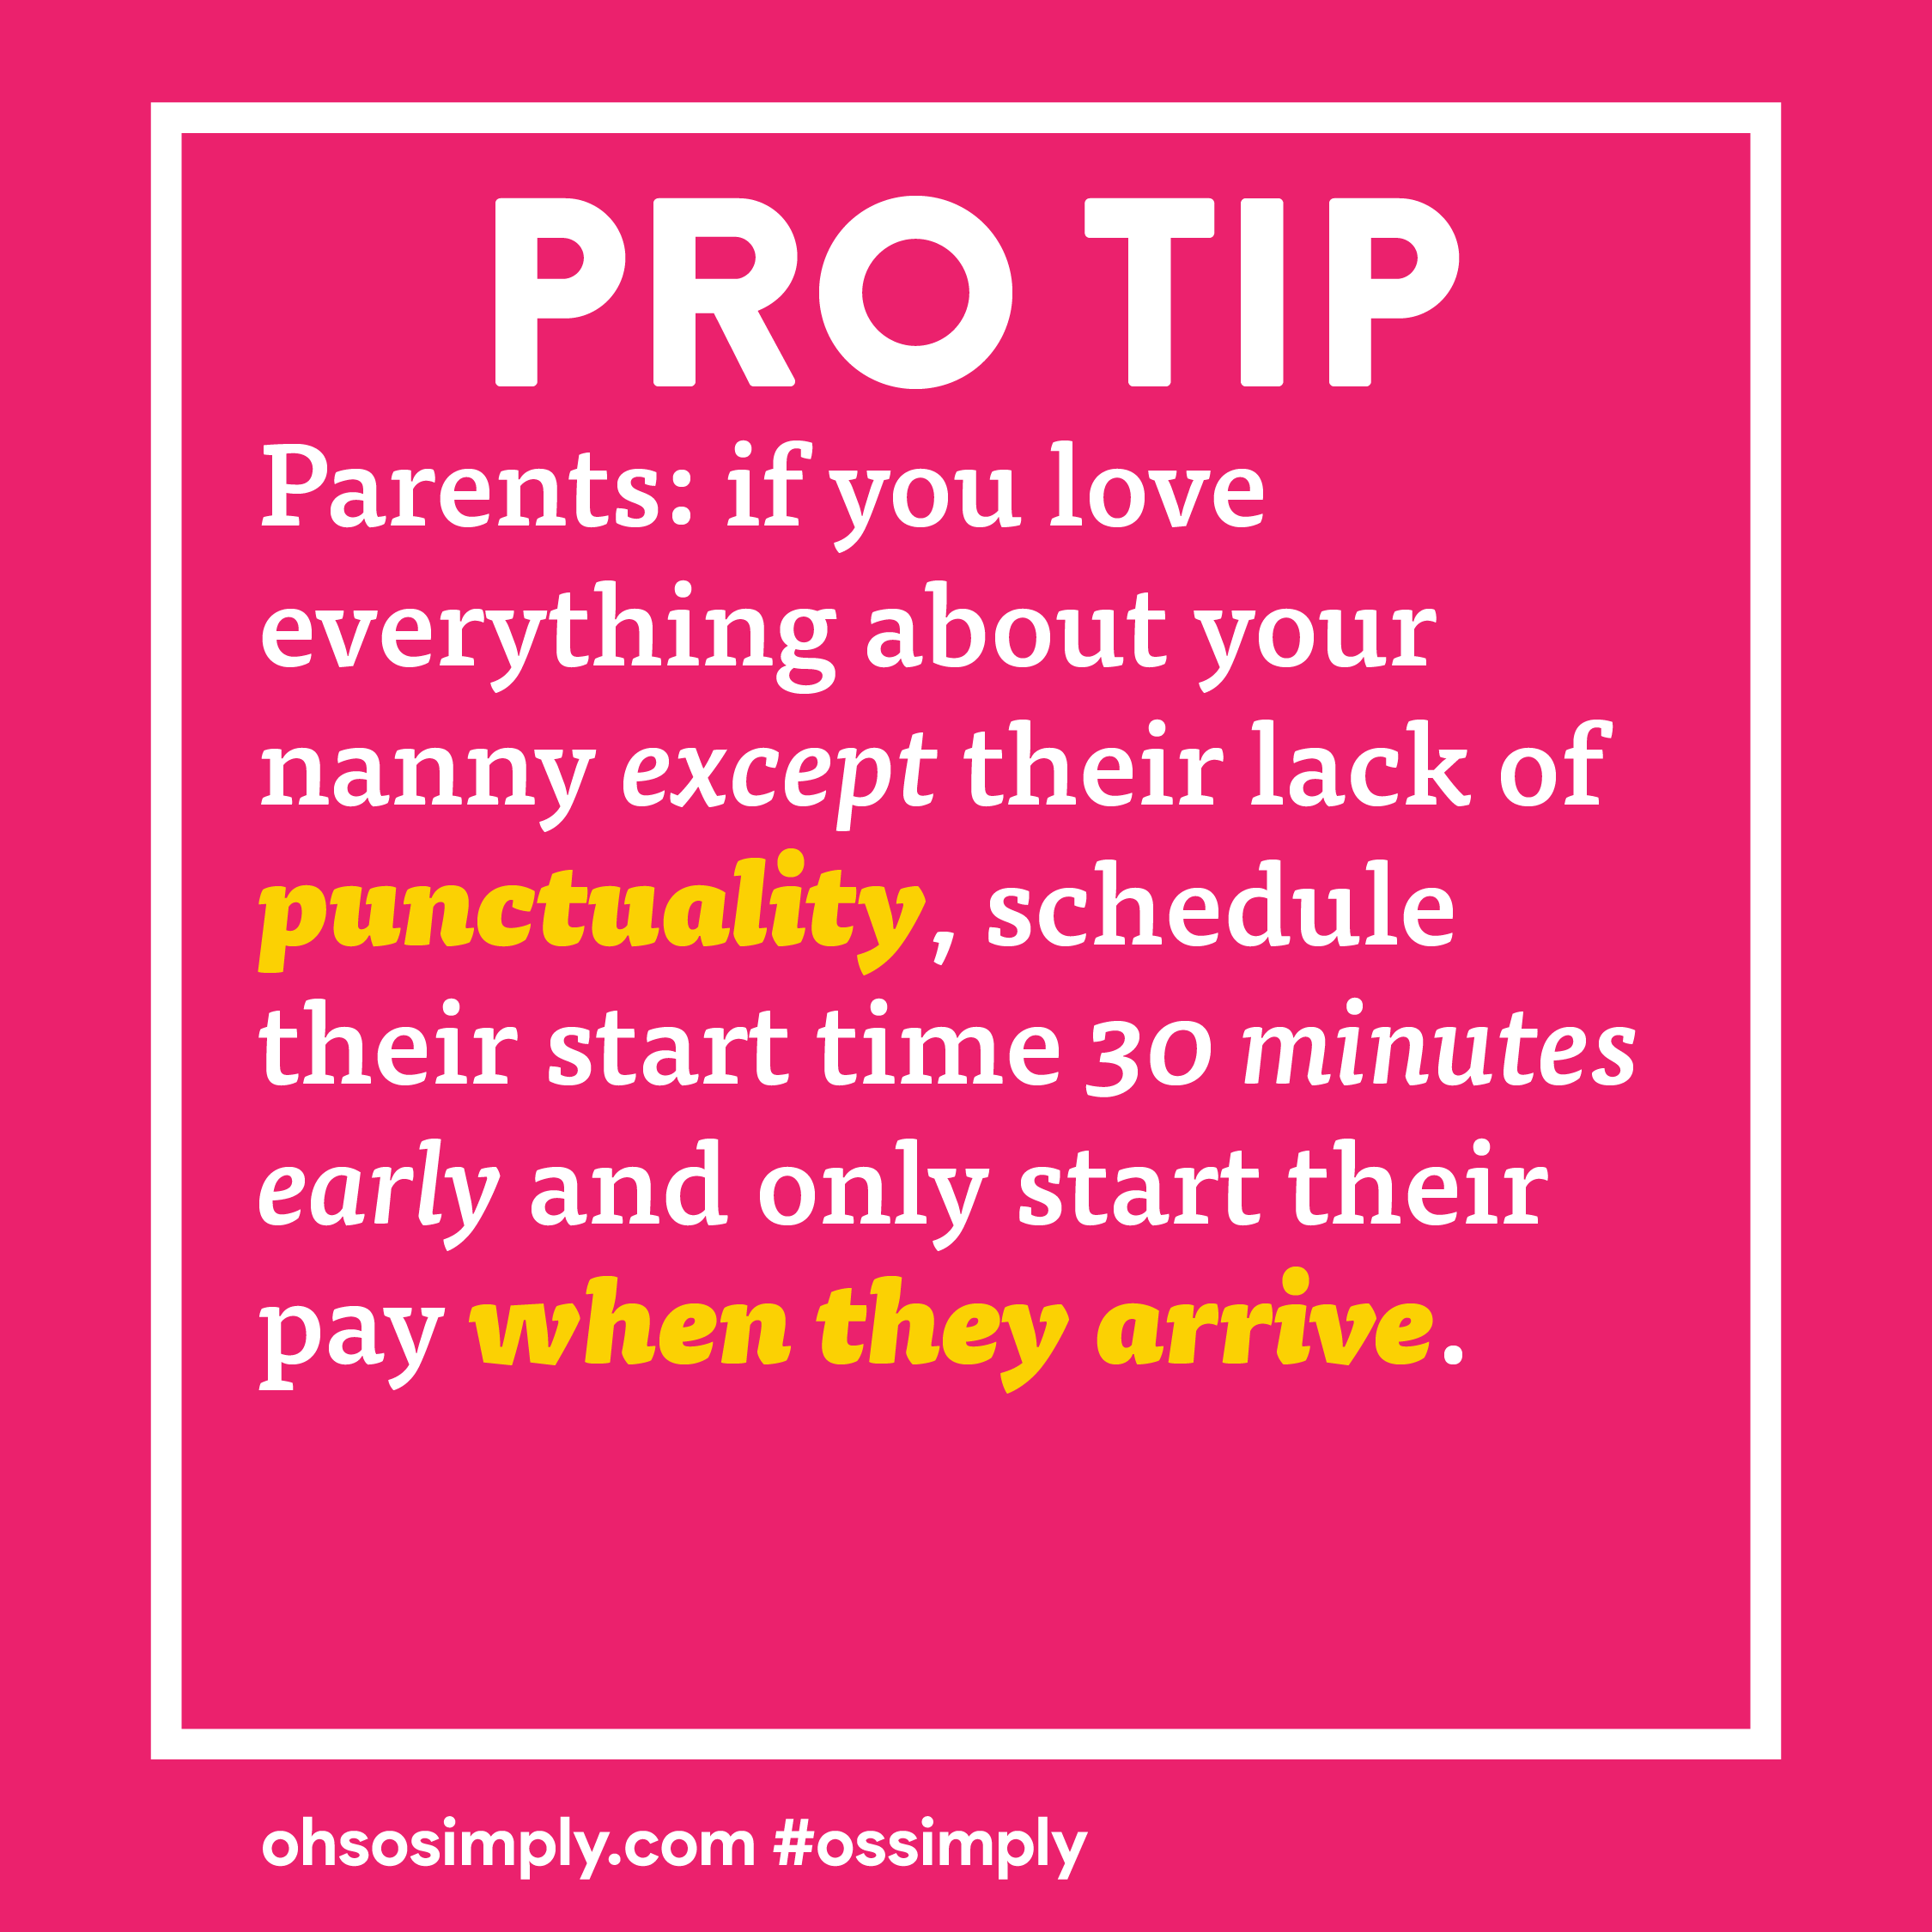 Pro Tip: Parents, if you love everything about your nanny except their lack of punctuality, schedule their start time 30 minutes early and only start their pay when they arrive.